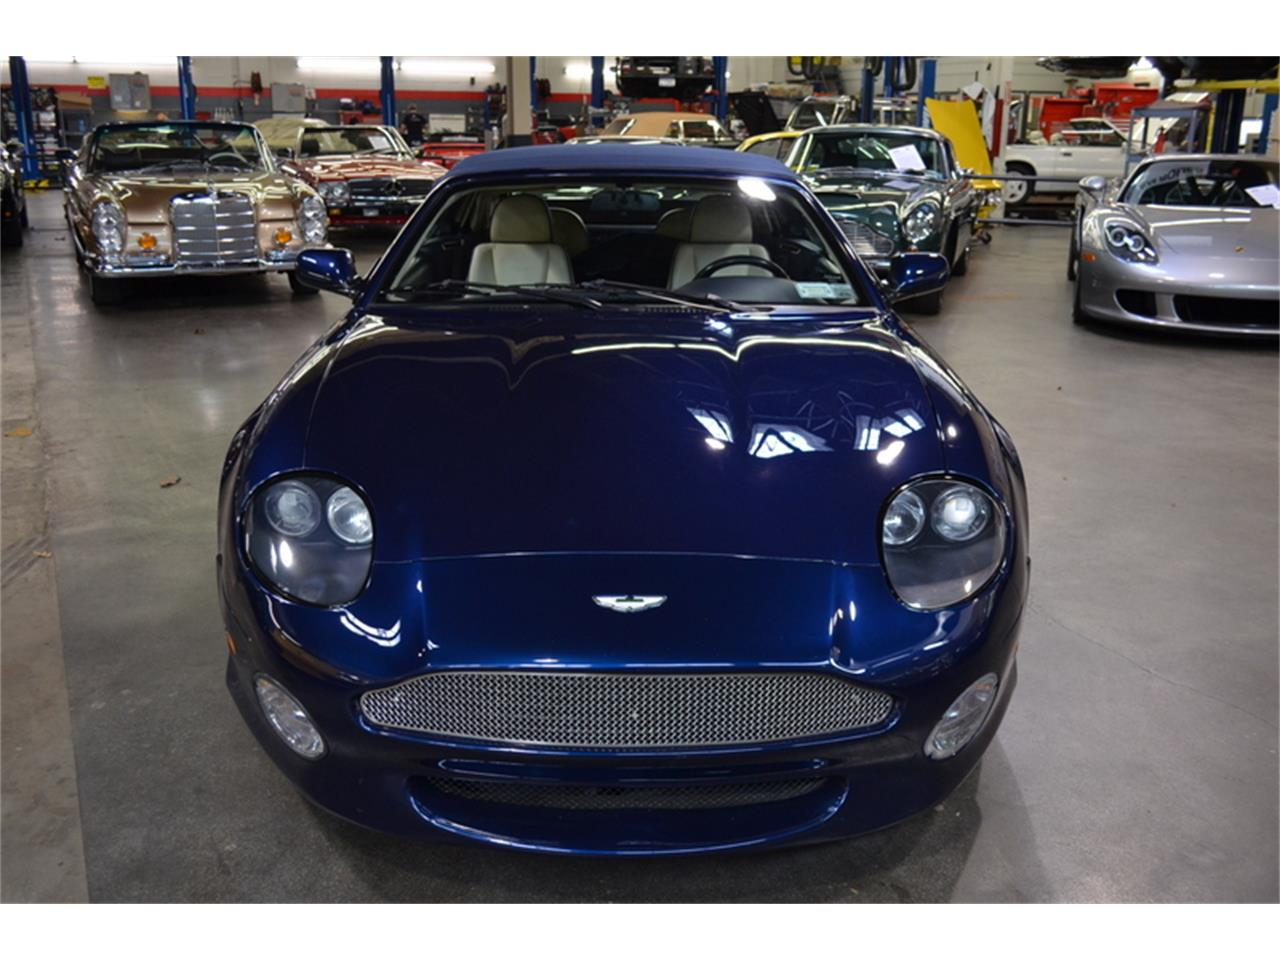 Large Picture of '02 Aston Martin DB7 Vantage Volante located in Huntington Station New York - $39,500.00 - MBES